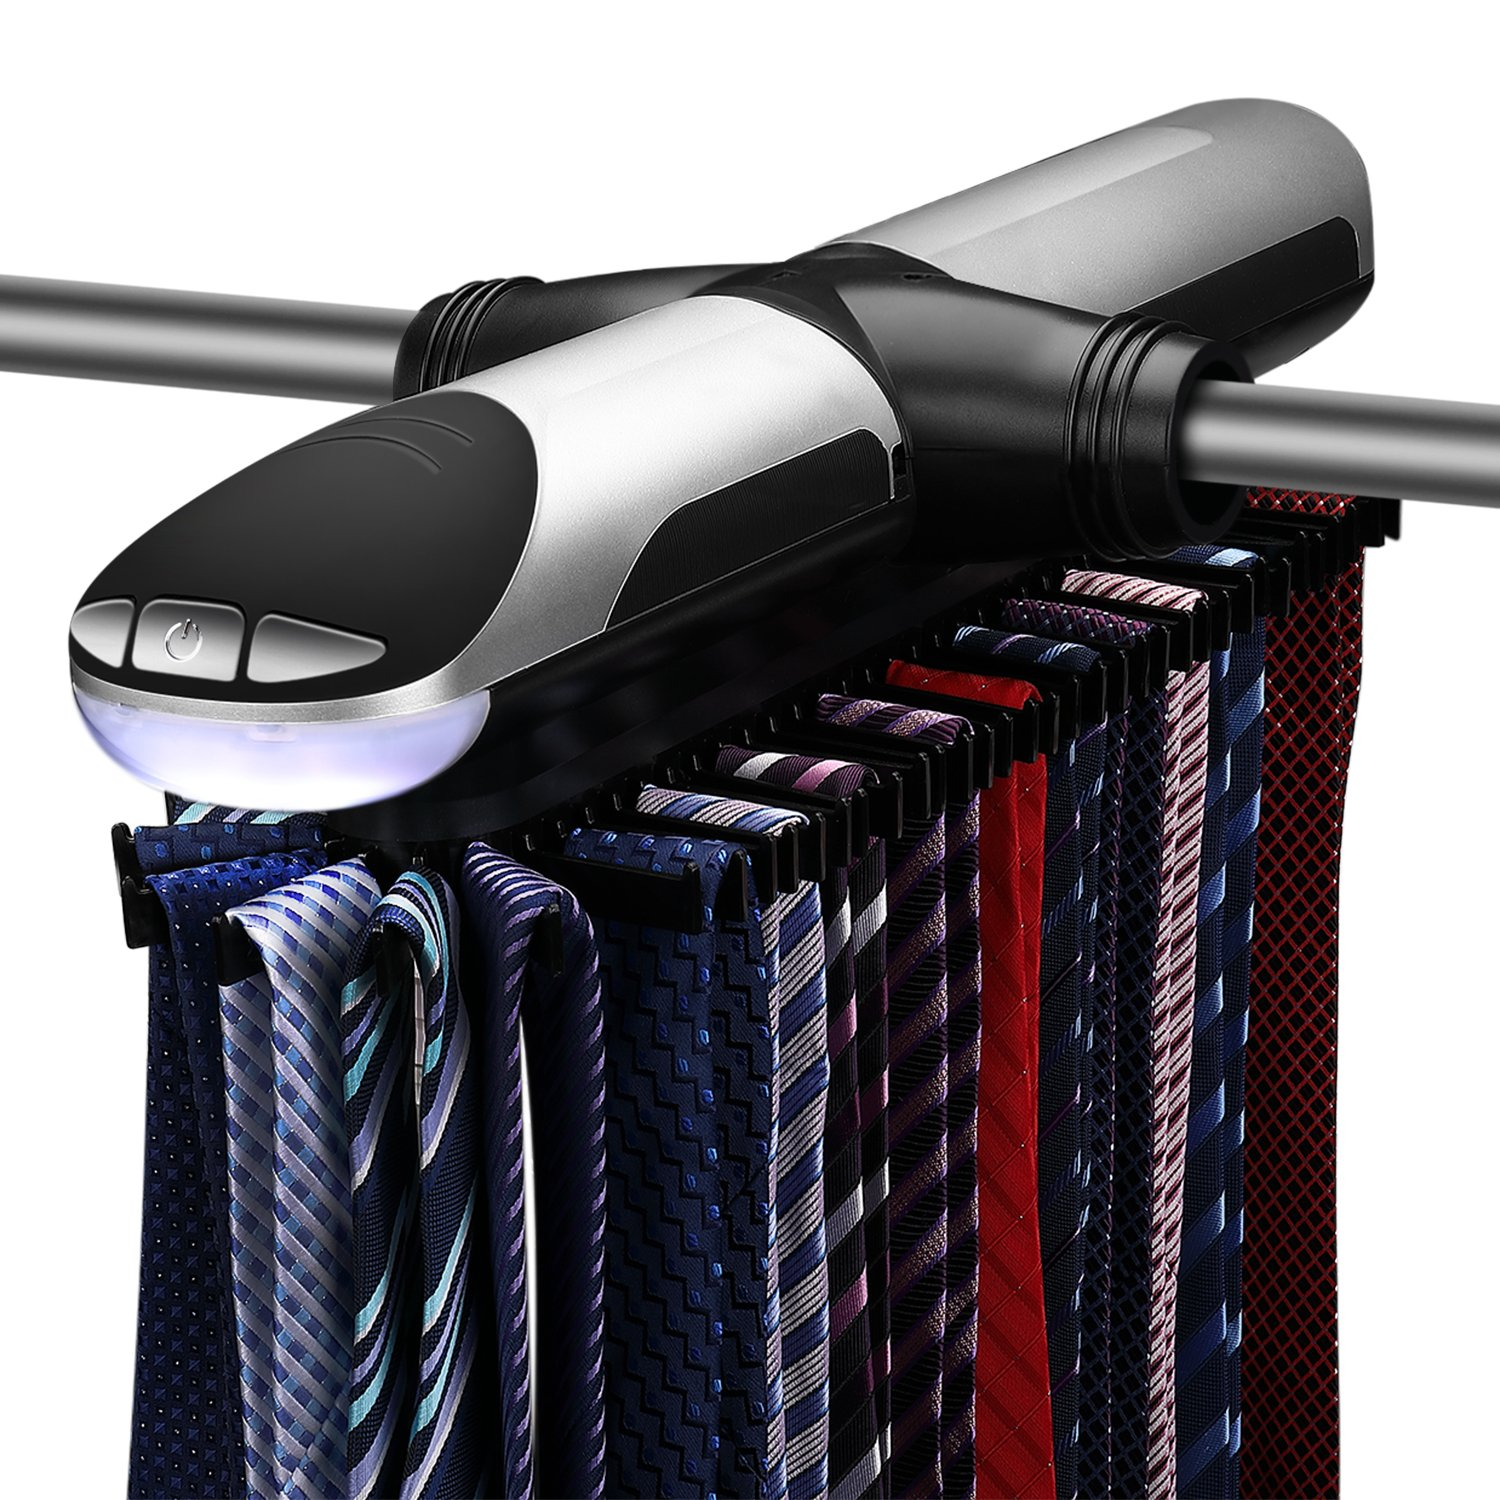 Flexzion Motorized Tie Rack - Electronic Rotating Automatic Necktie Tie Organizer Holder Stores Storage Displays Hanger Closet System For Men (72 Tie & 8 Belts) with Illuminate LED Lights by Flexzion